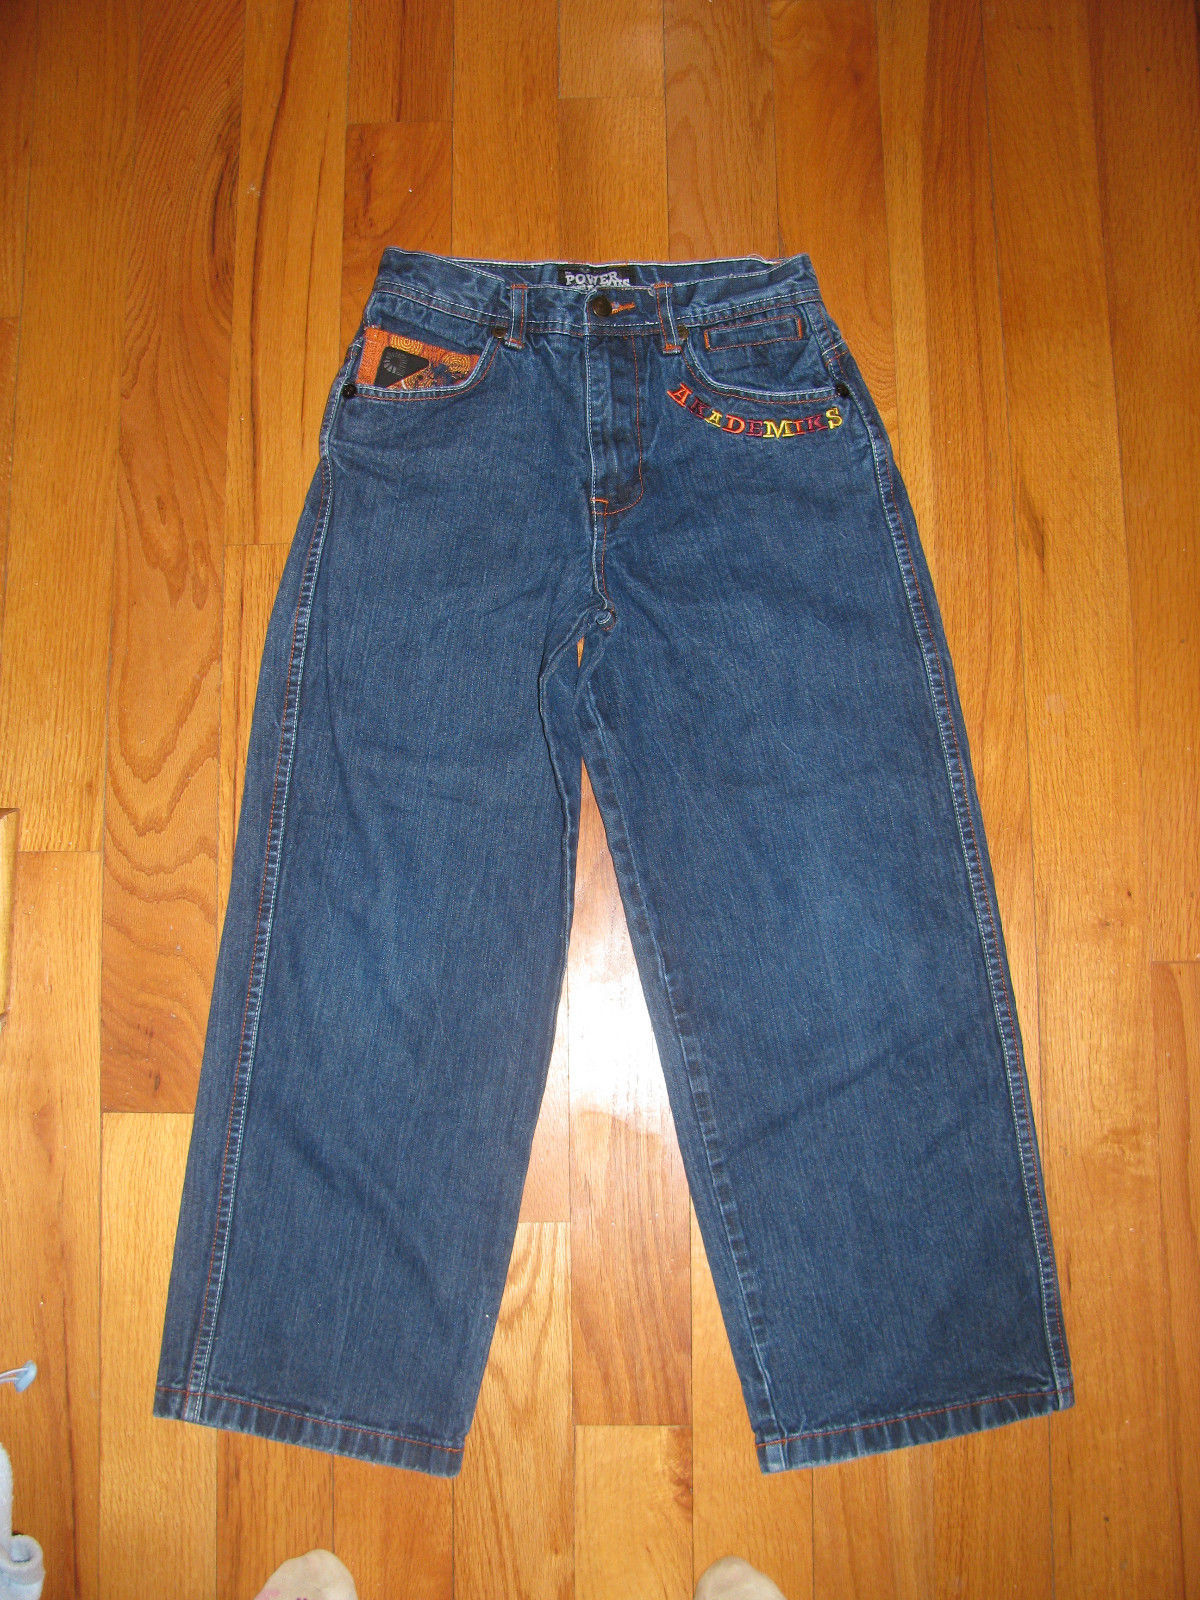 JEANS AKADEMIKS DENIUM JEANS THE POWER OF JEANIUS SIZE12 EMBELLISHED EMBROIRERY